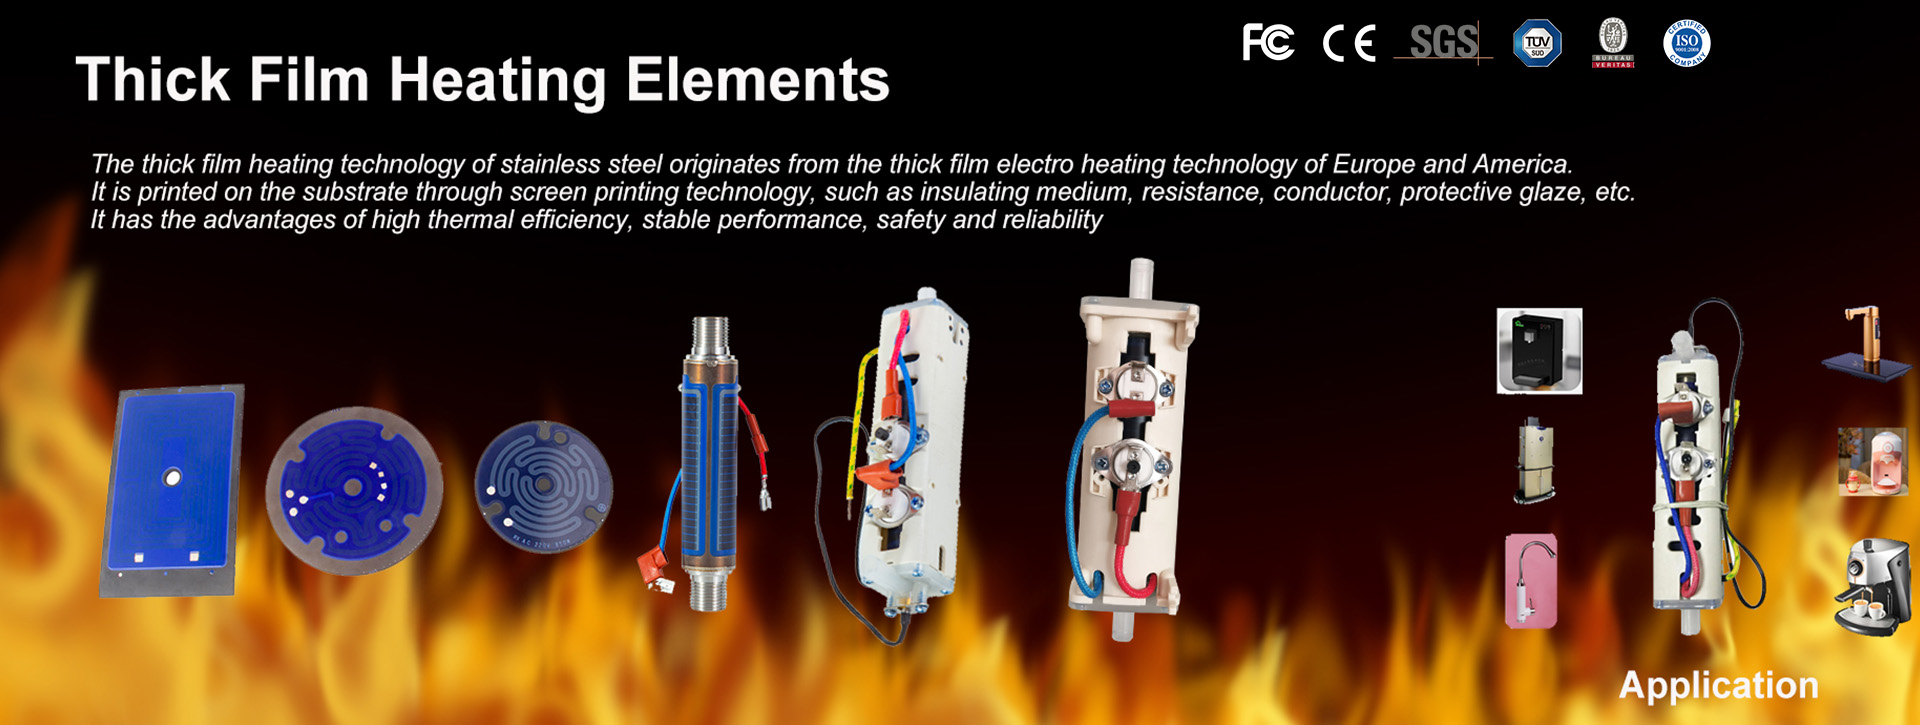 Thick Film Heating Elements